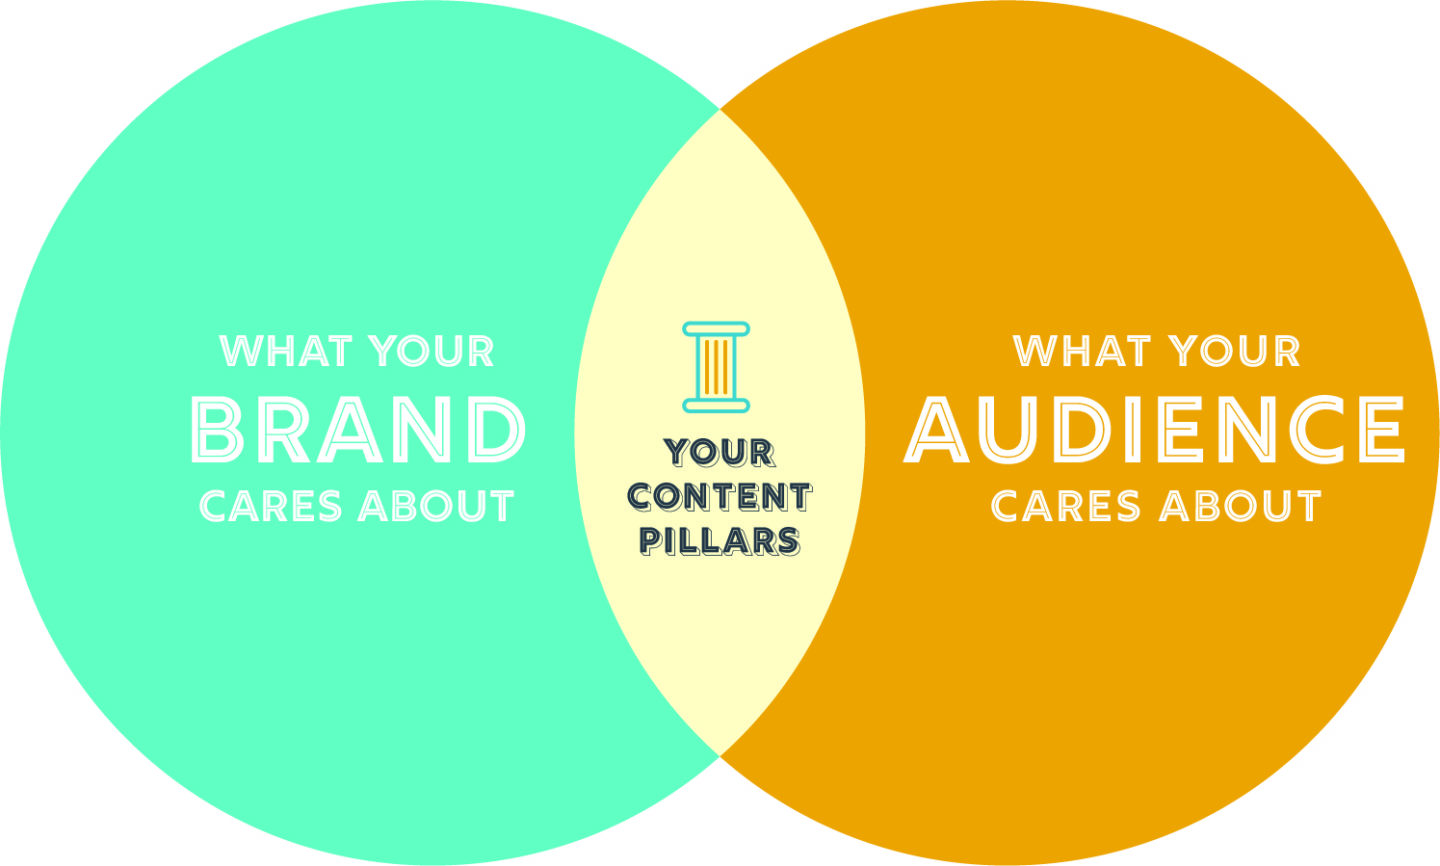 Use This Venn Diagram to Determine Your Content Strategy Pillars